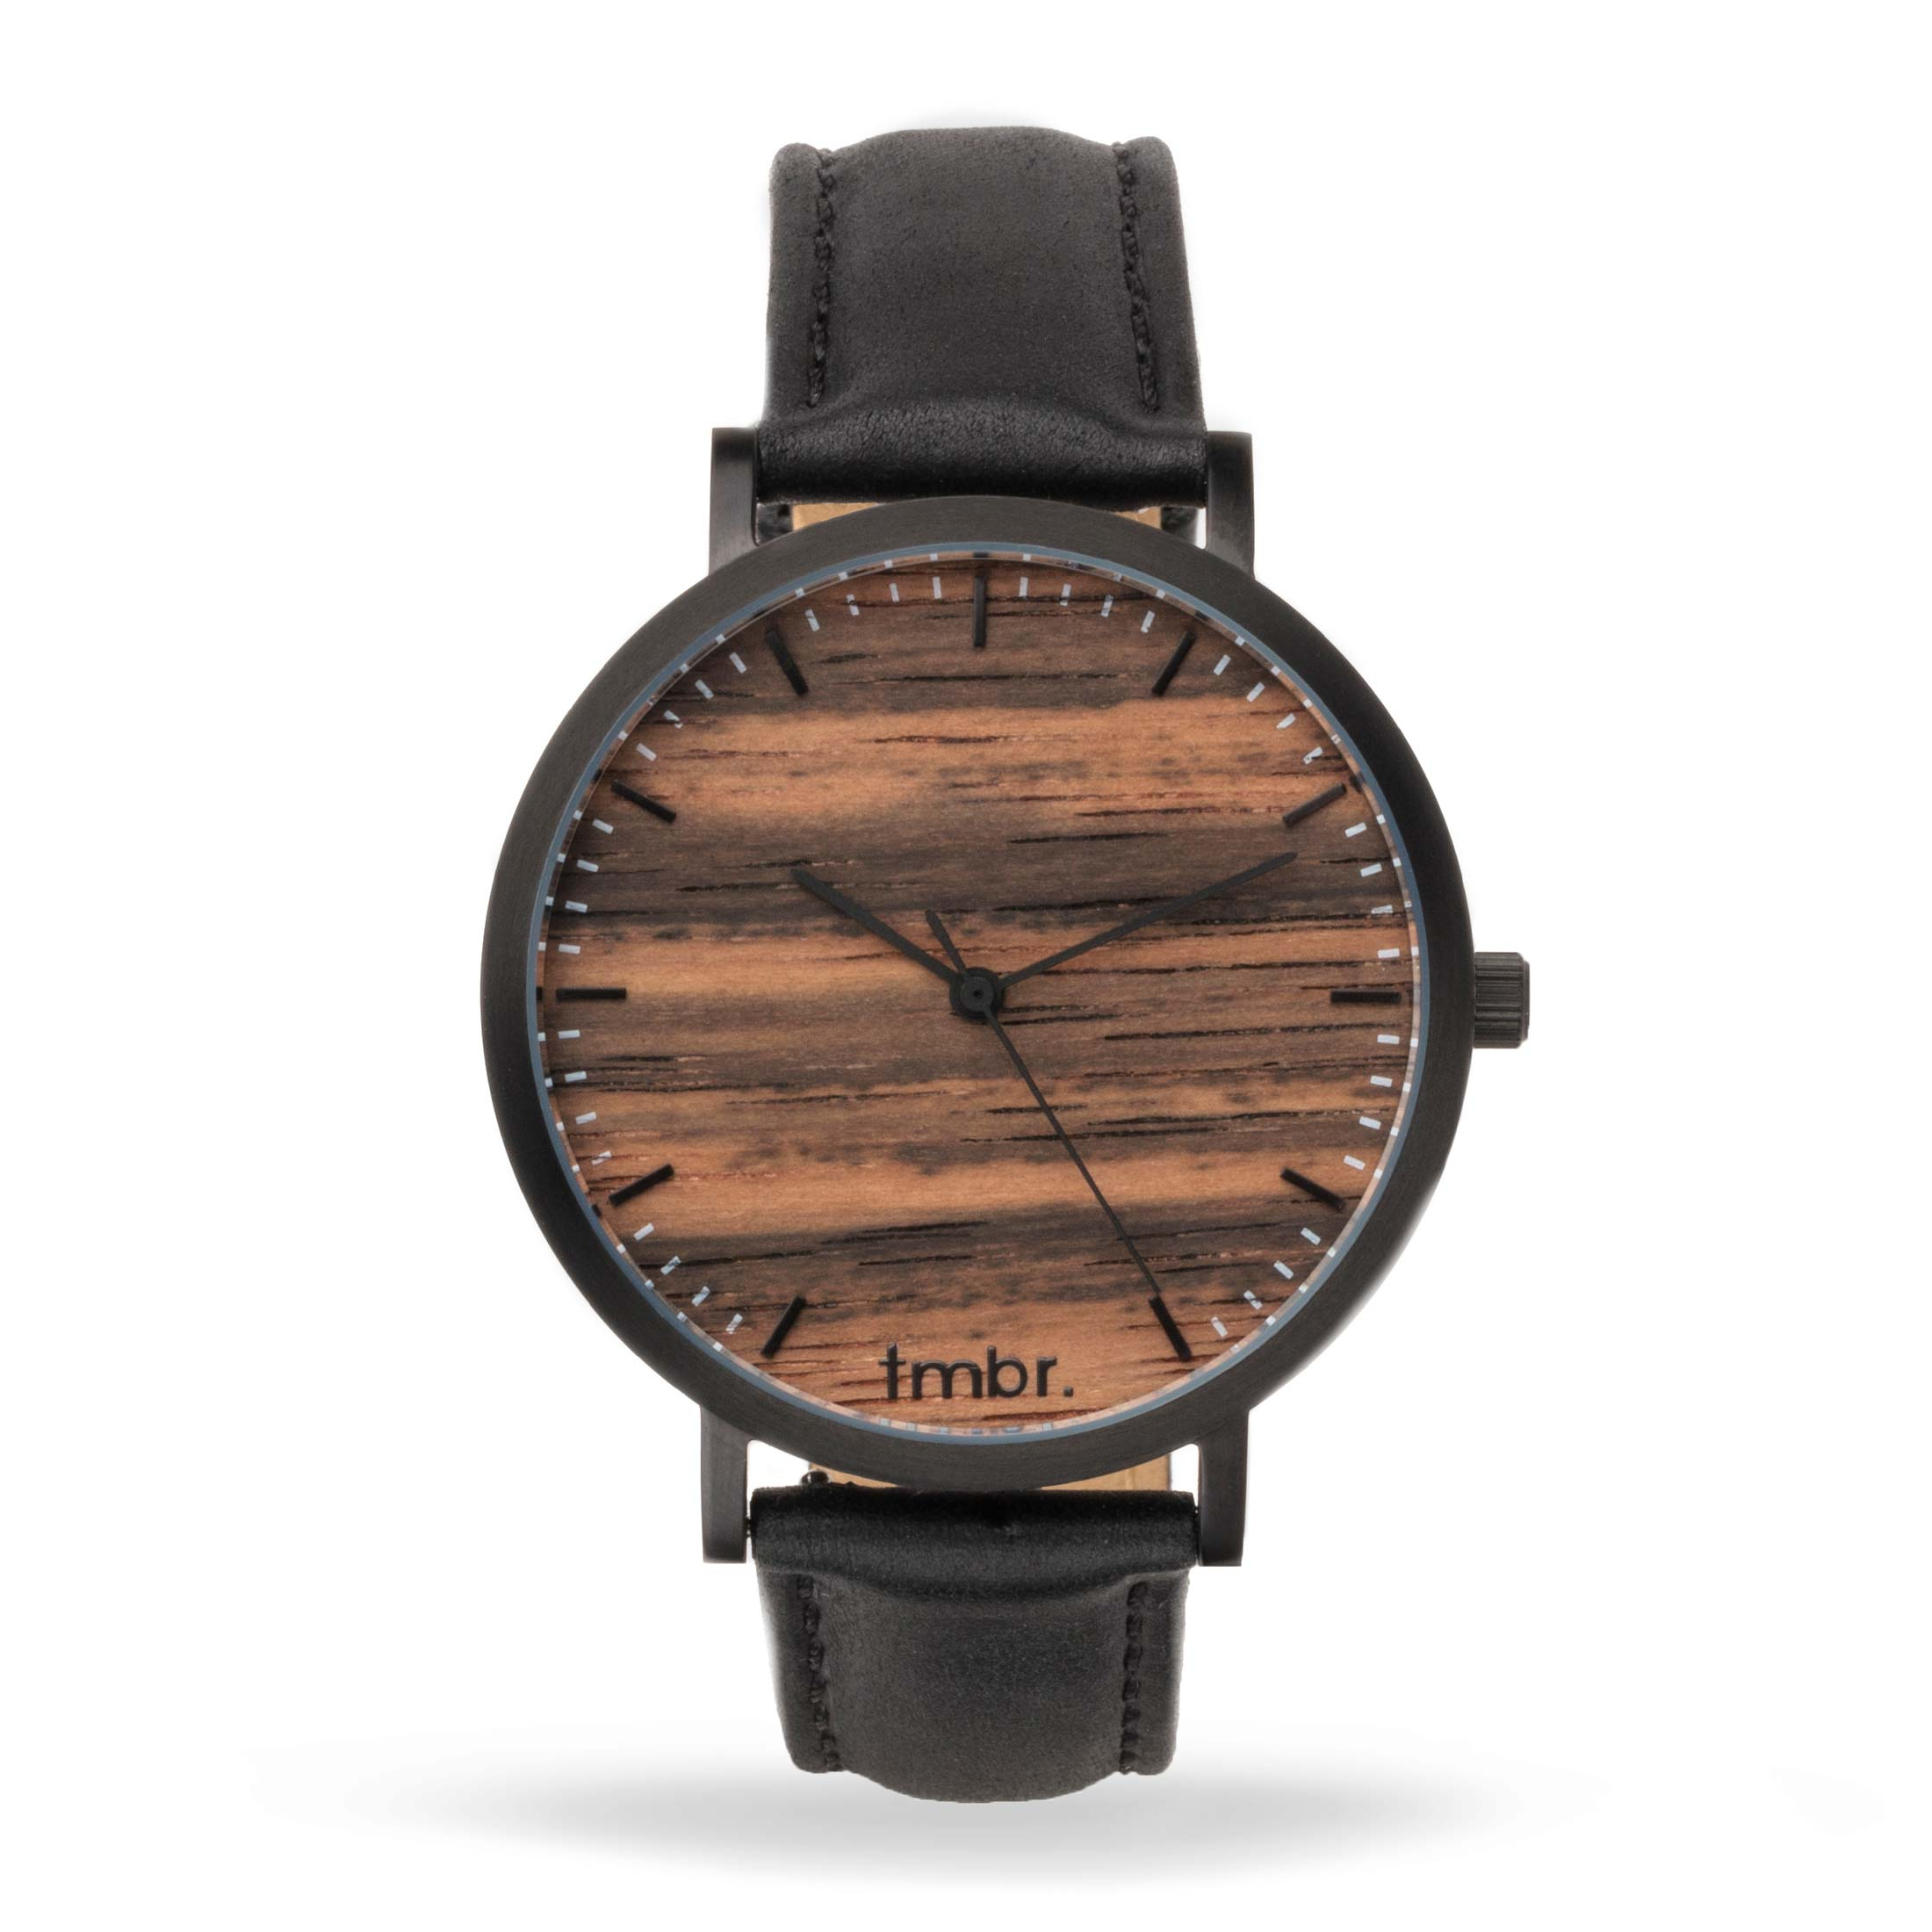 Helm Minimalist Wooden Personalized Watch Sandalwood